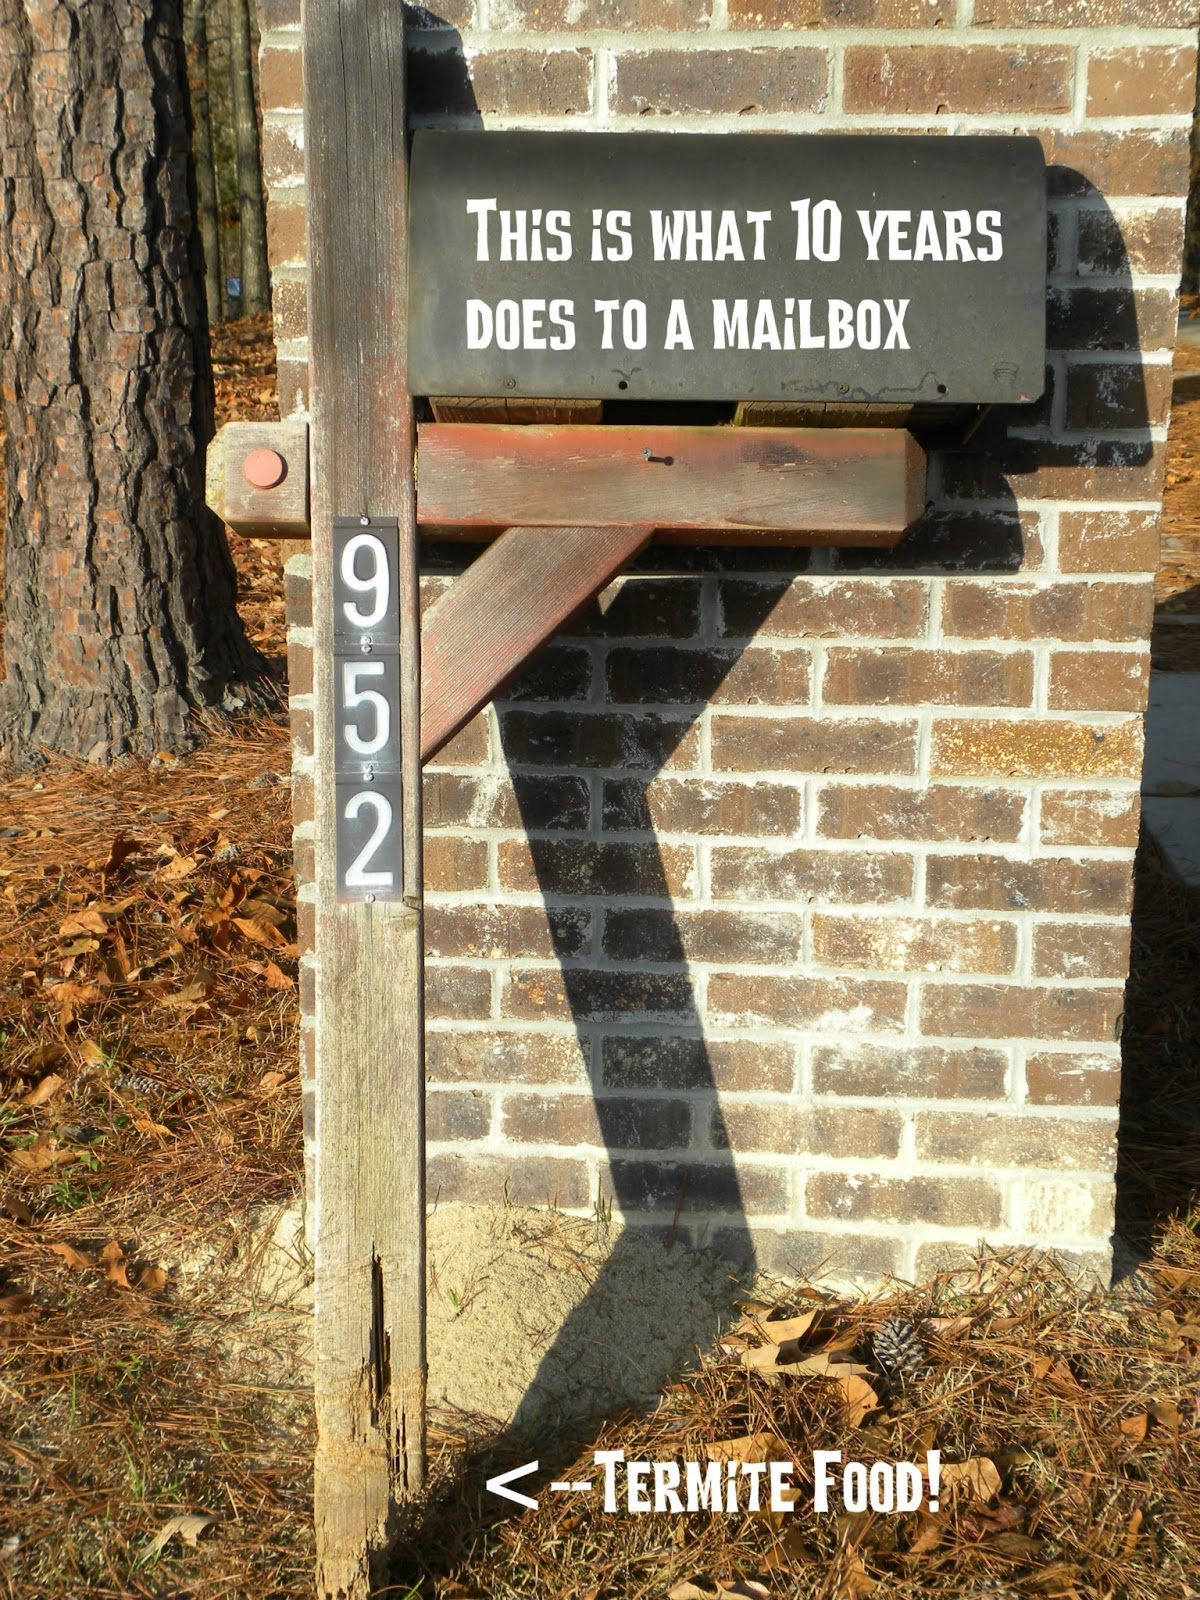 Practips diy replacing your mailbox post one day last summer when we were coming home from running errands i pulled into the driveway and stopped to get the mail as i walked up to the mailbox solutioingenieria Choice Image